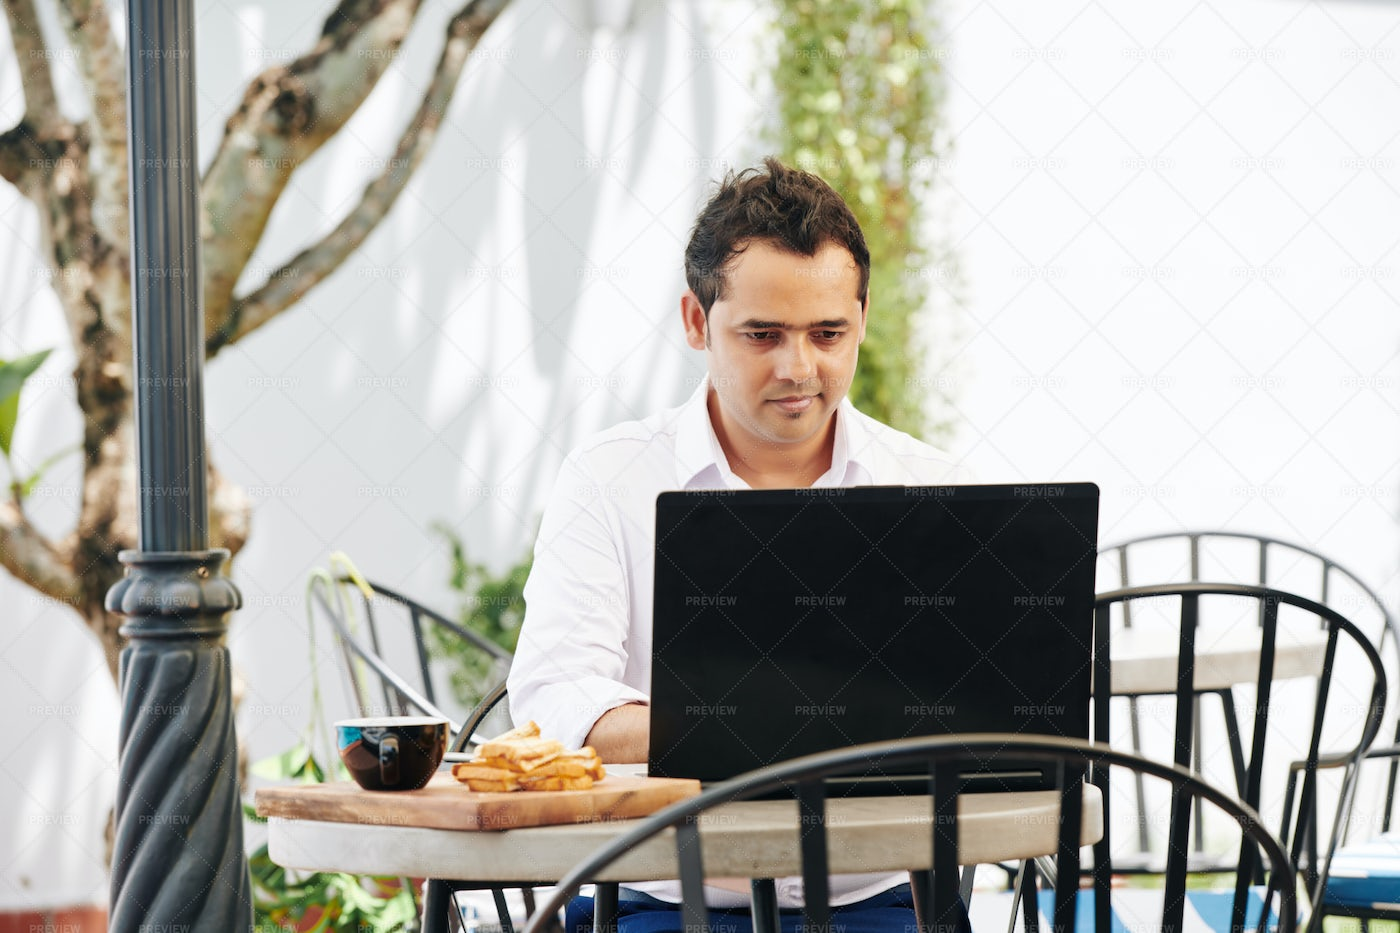 Indian Man Working On Laptop In Cafe: Stock Photos